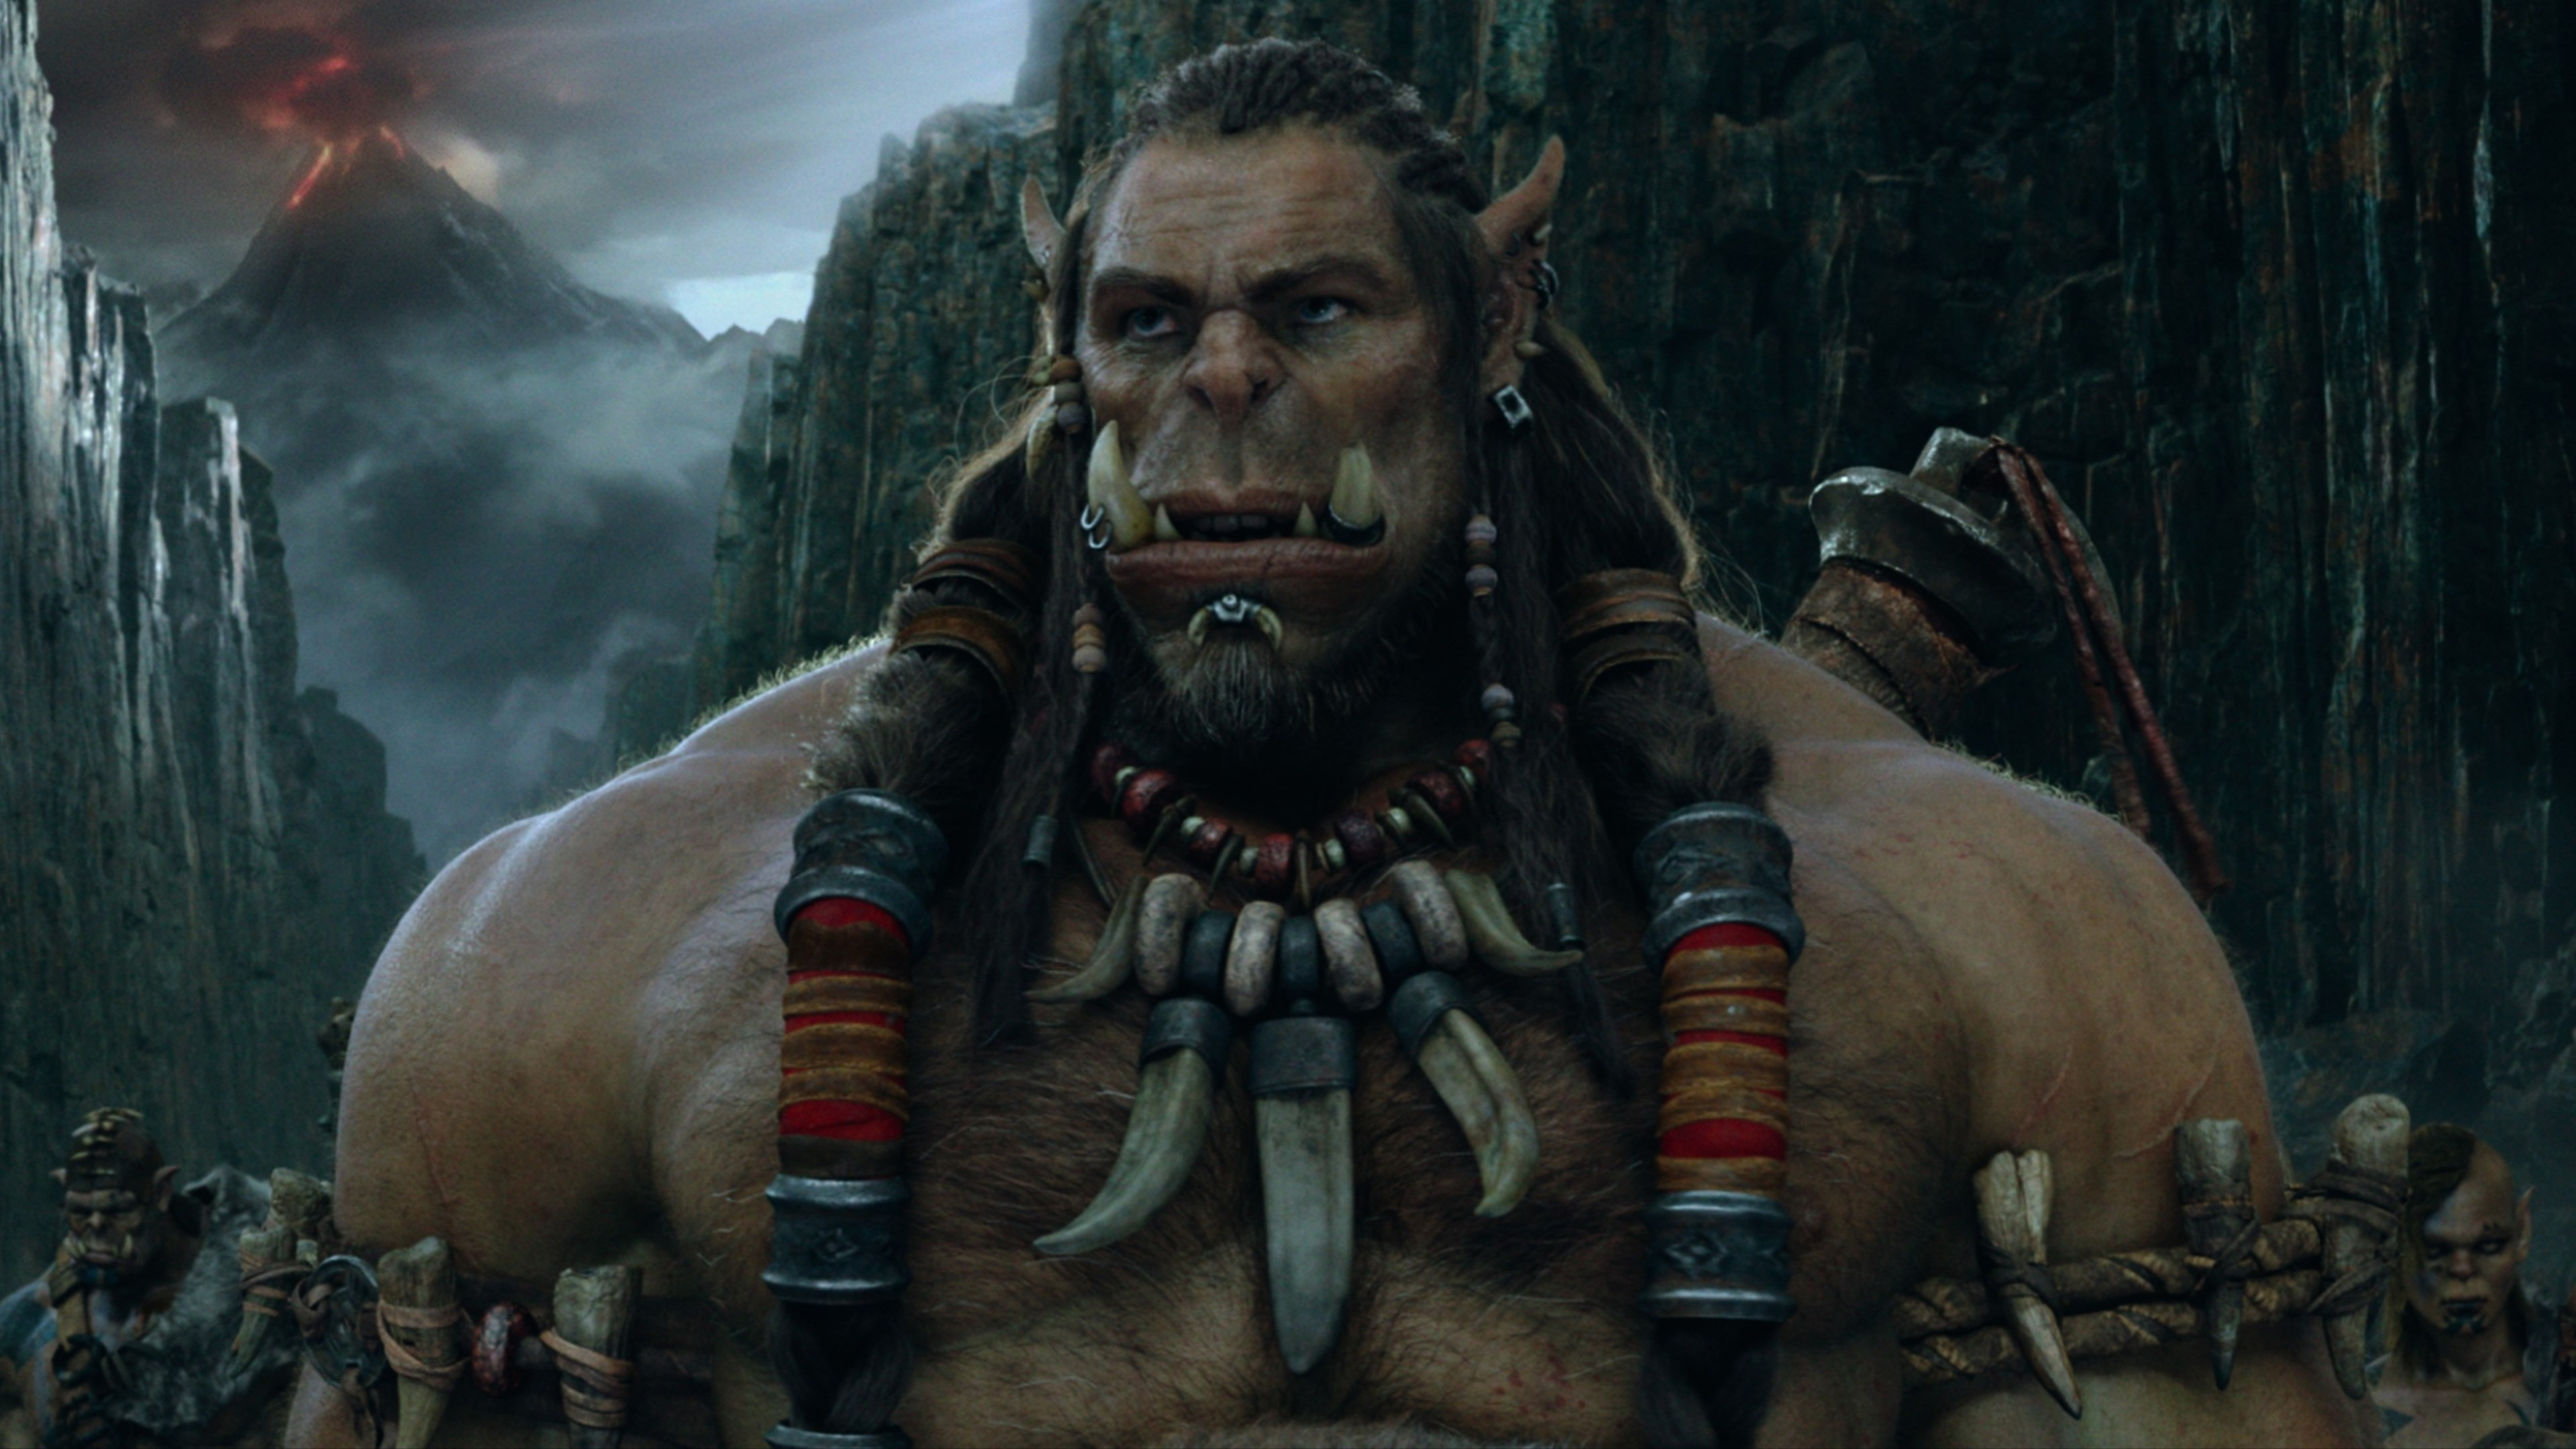 Durotan Warcraft 2016 Hd Movies 4k Wallpapers Images